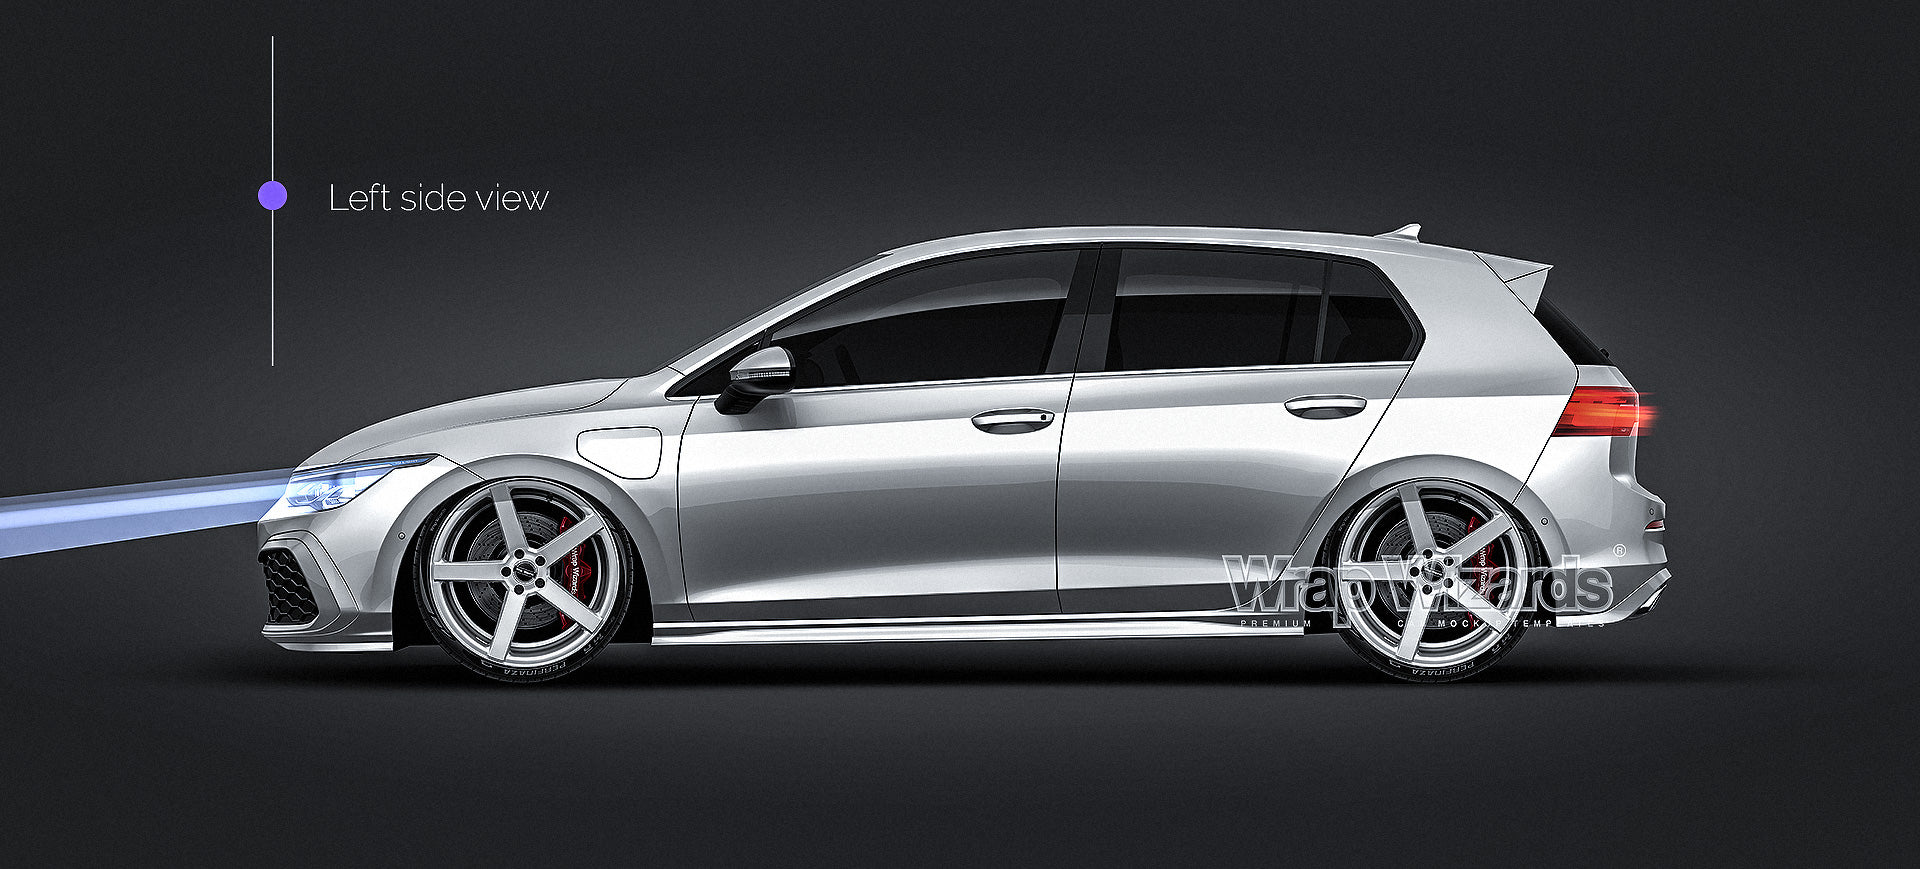 Volkswagen Golf MK8 GTE 2020 satin matt - all sides Car Mockup Template.psd